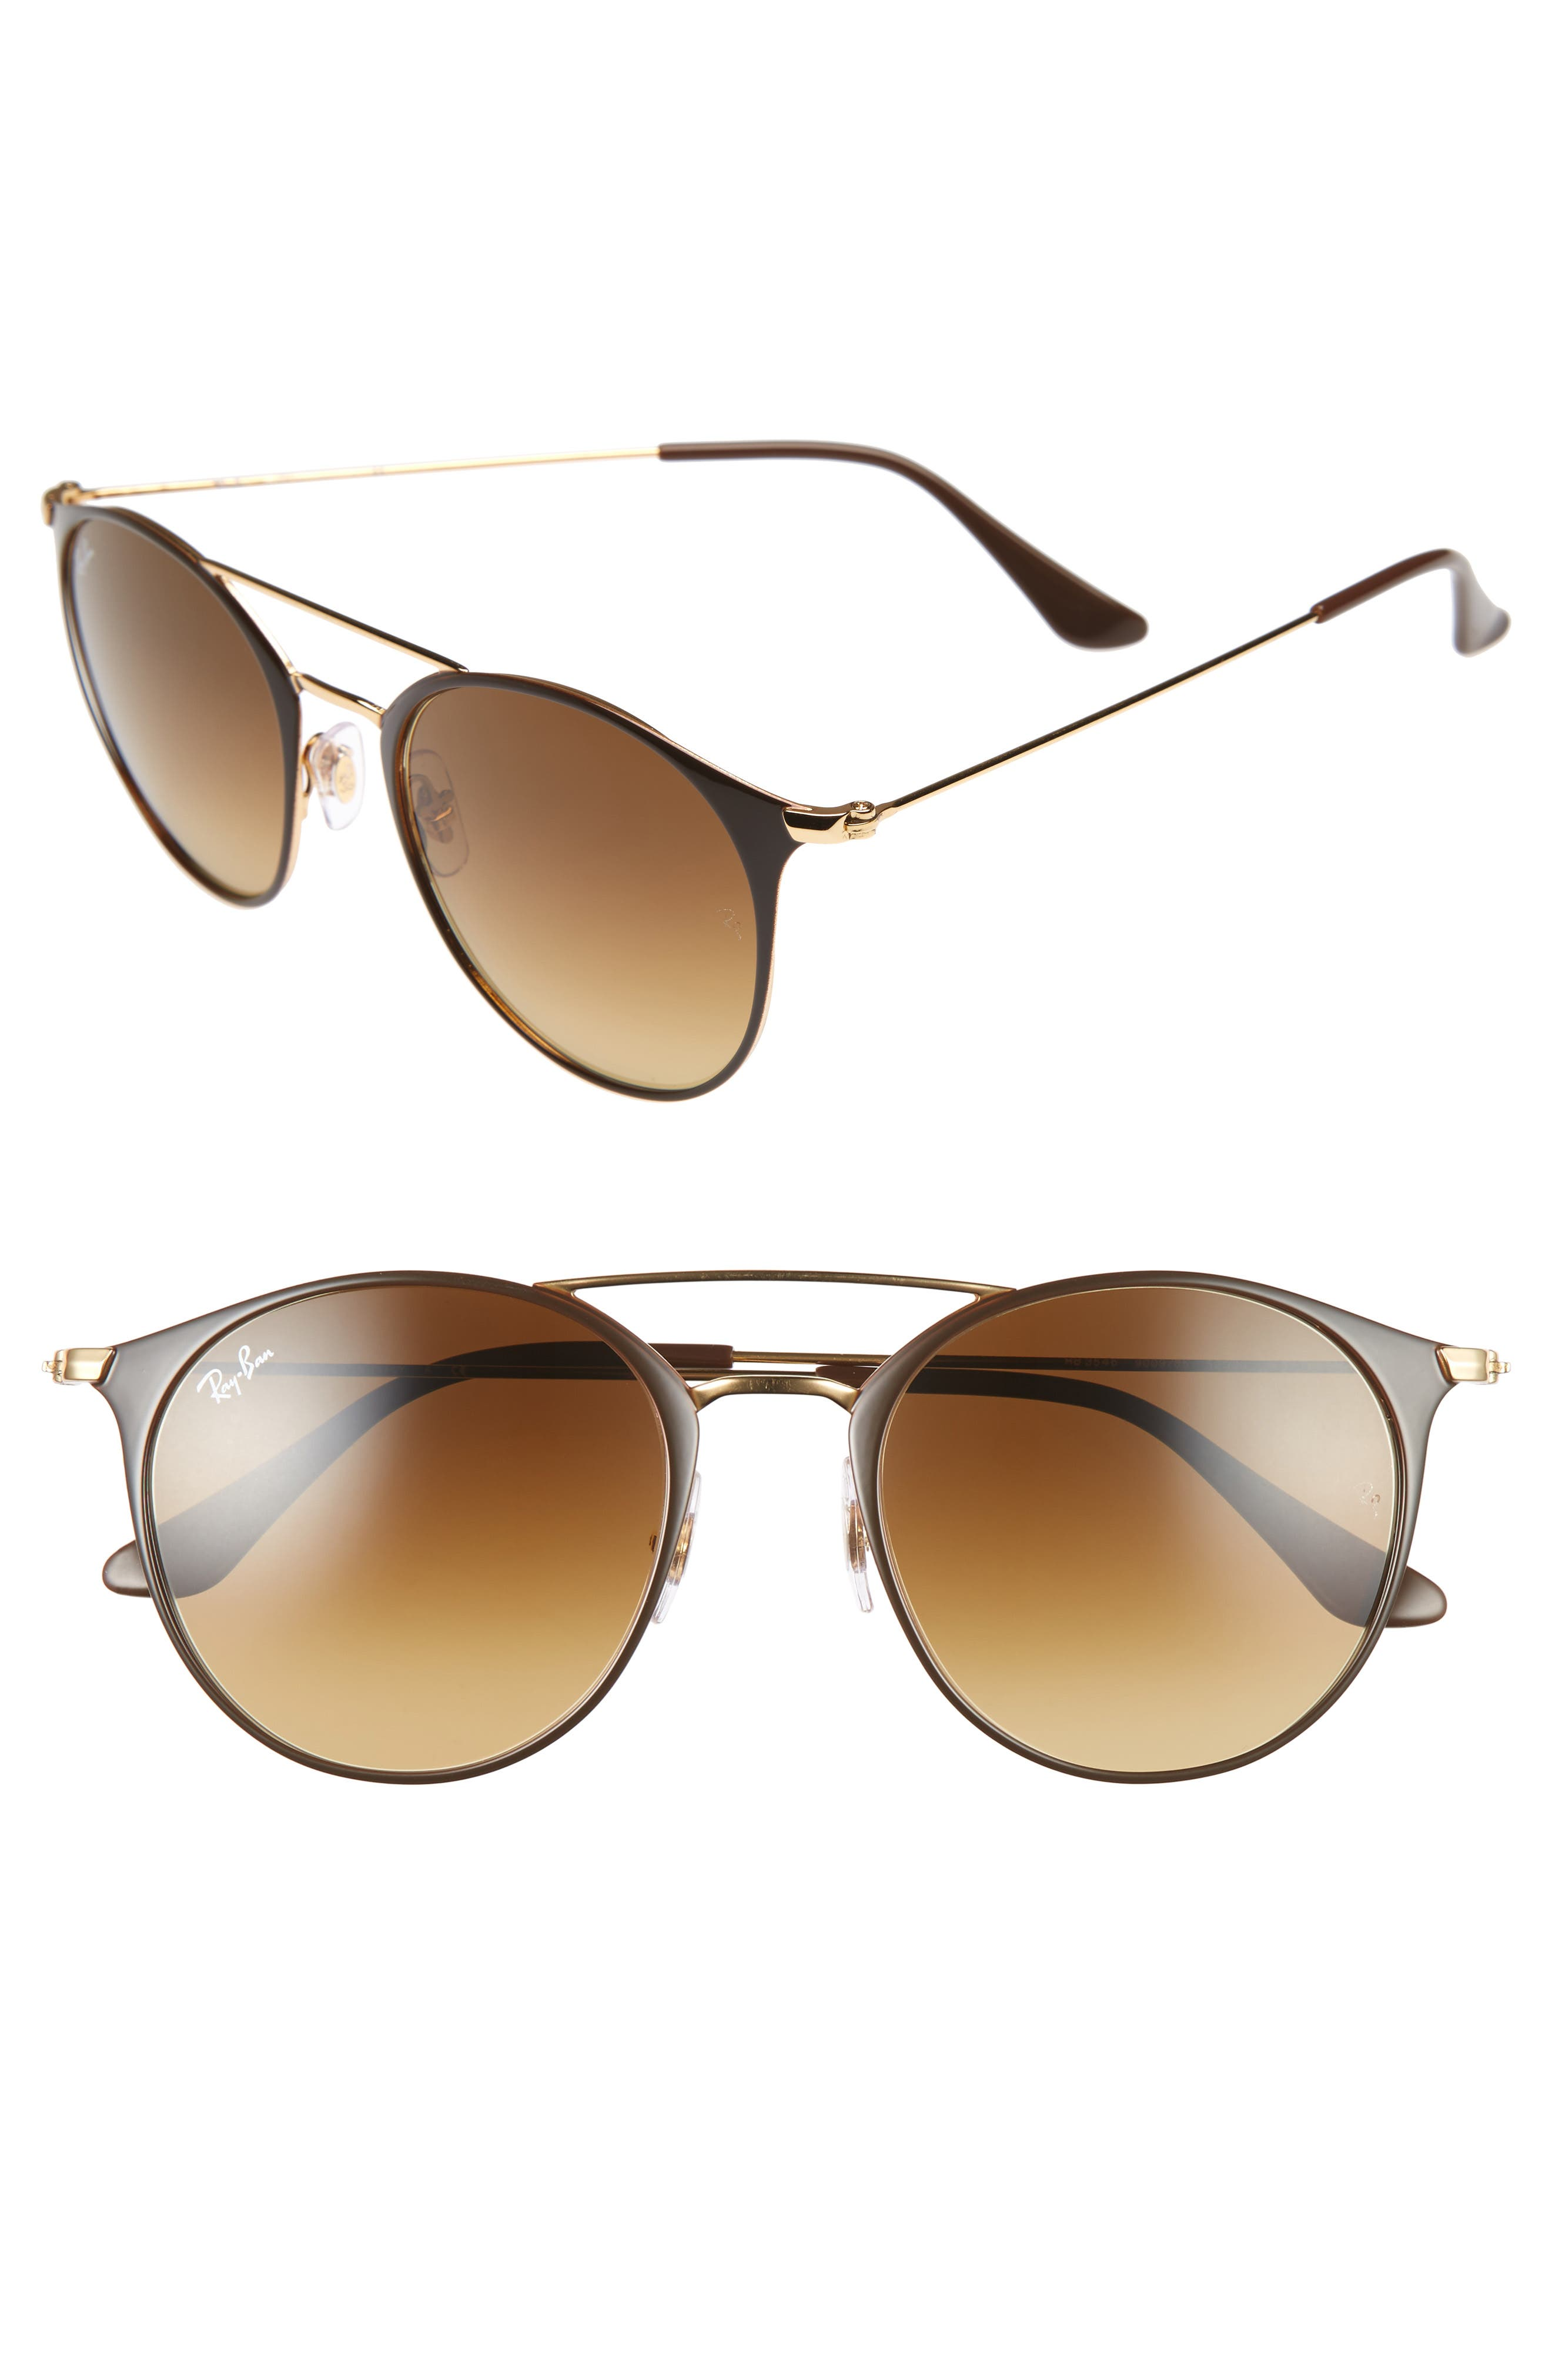 Highstreet 52mm Round Brow Bar Sunglasses,                         Main,                         color, BROWN/ GOLD